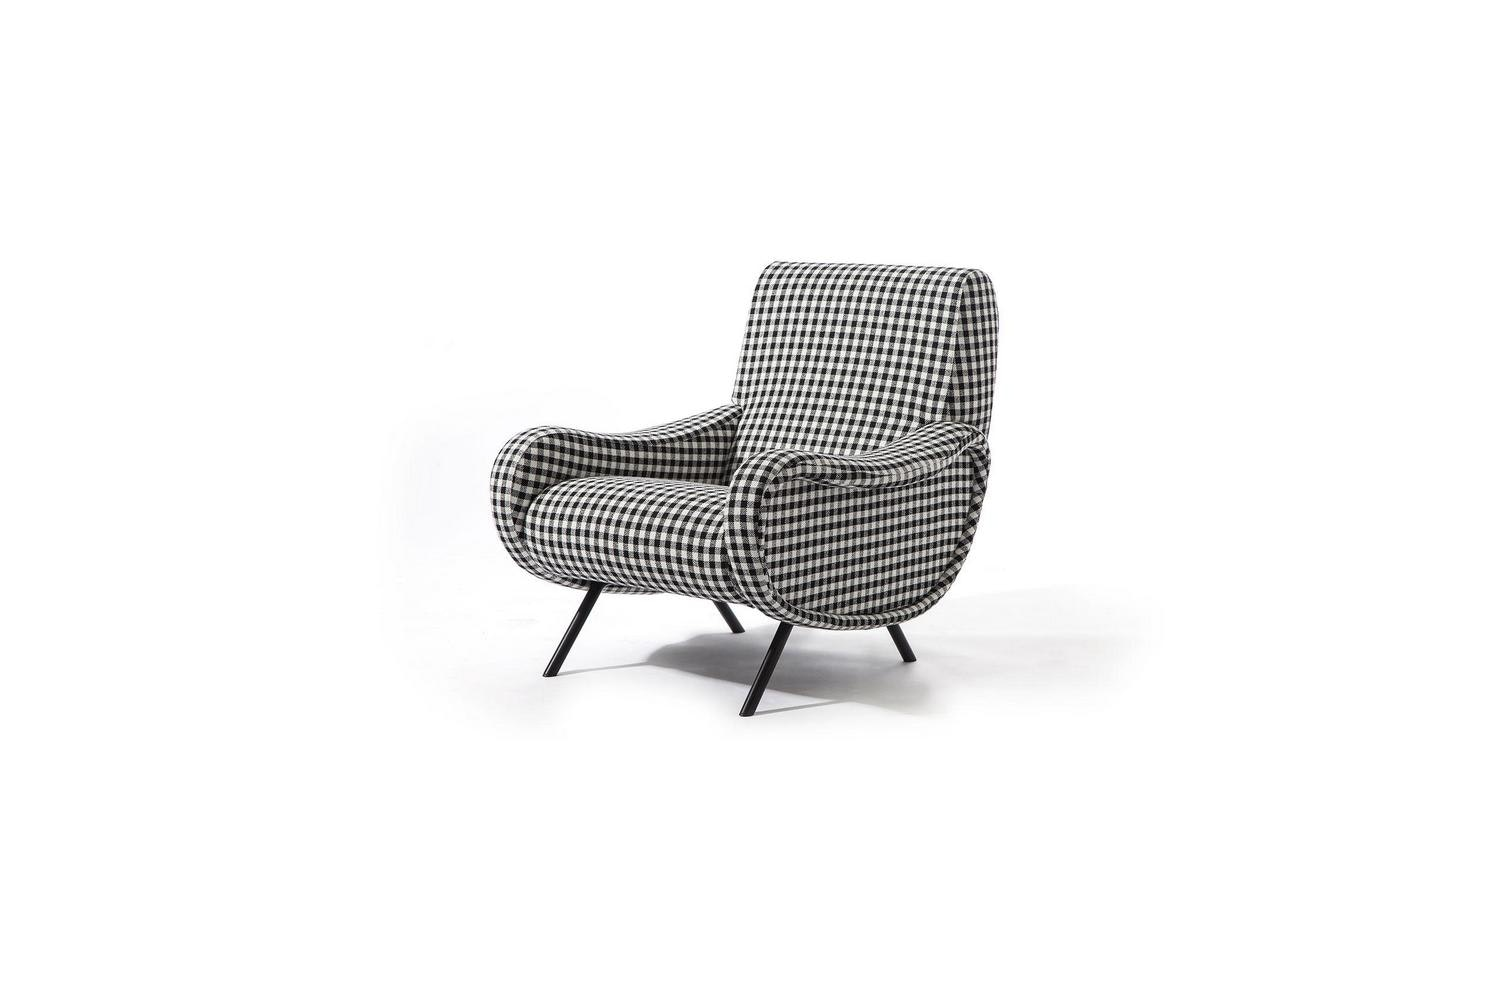 720 Lady Armchair by Marco Zanuso for Cassina